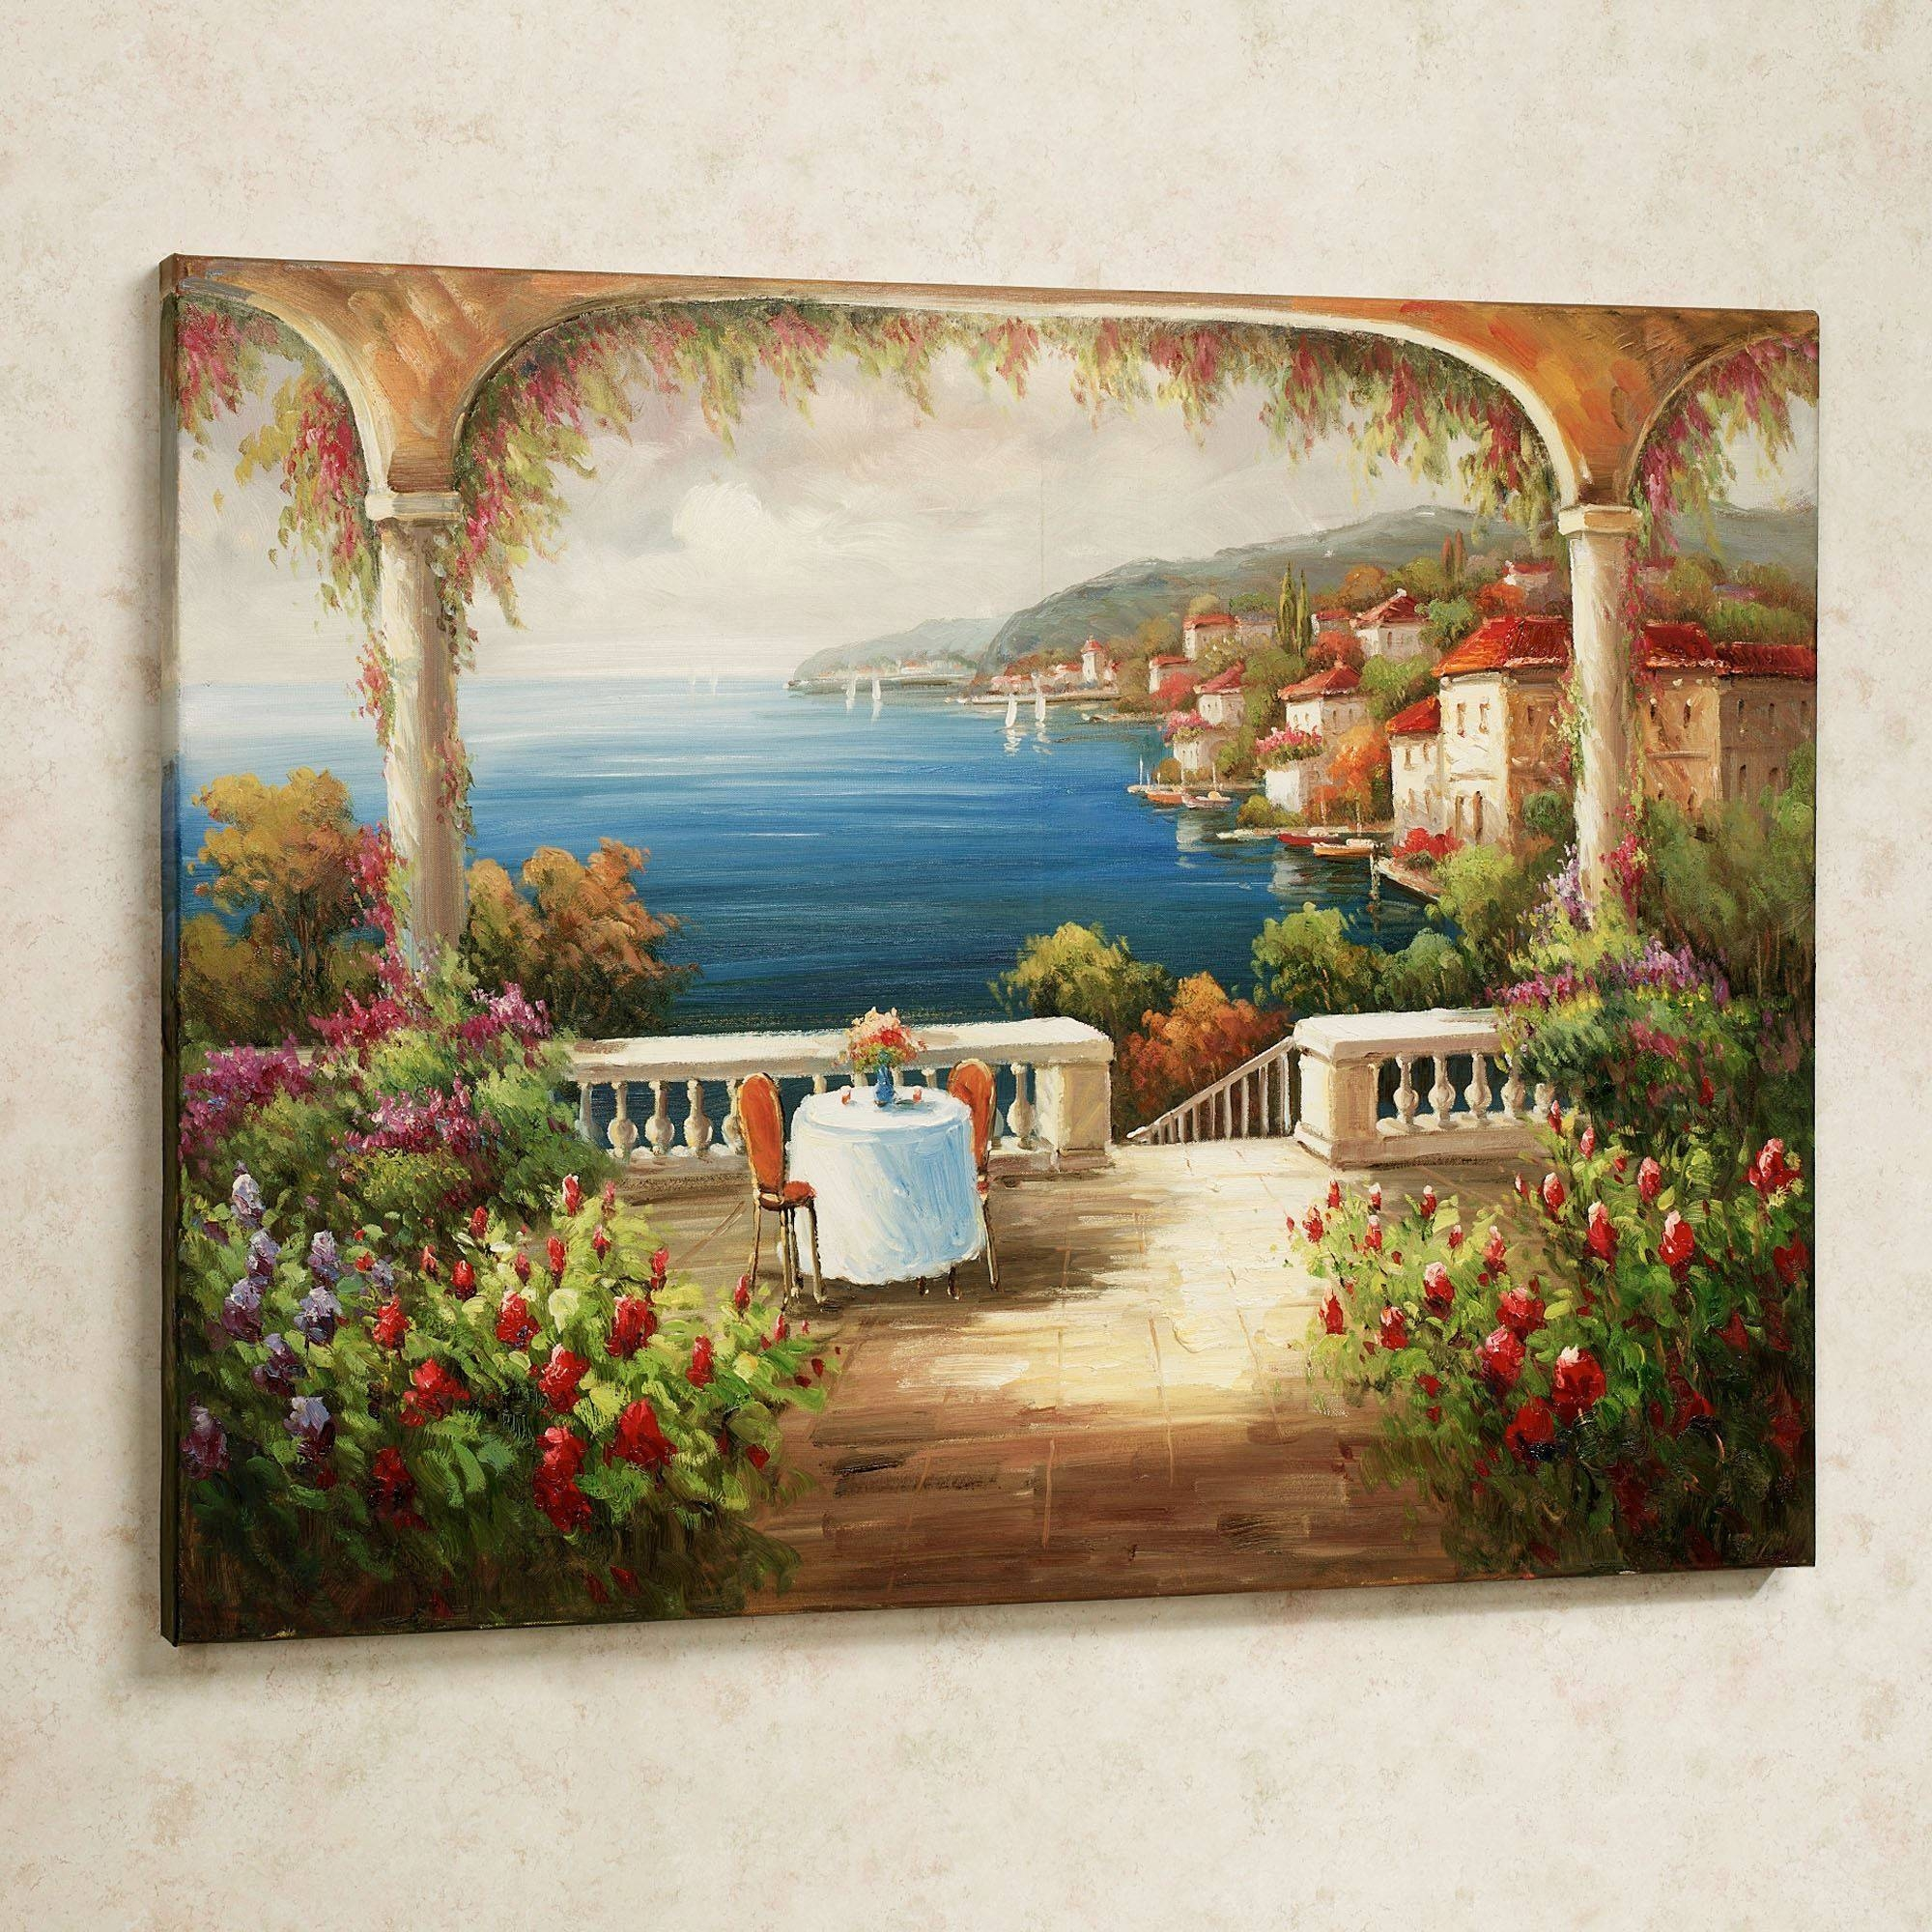 Kitchen : Large Artwork For Wall Wall Pictures For Living Room for Current Tuscany Wall Art